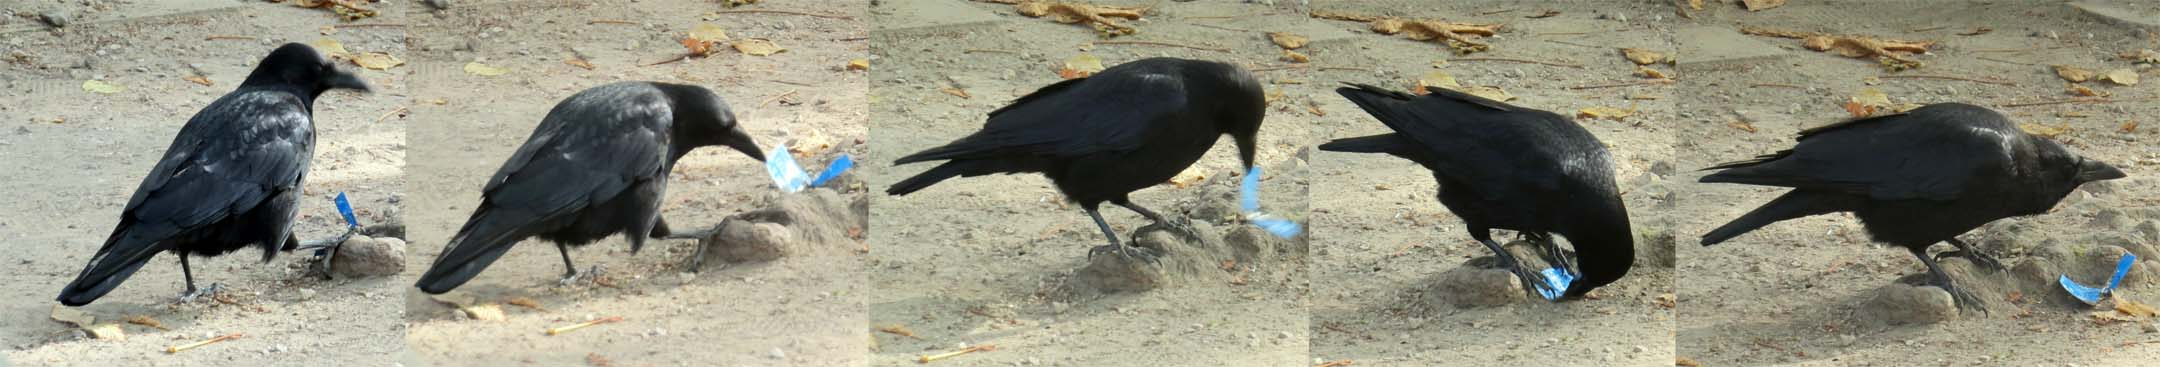 Photo catch-up: Crow playing in Parc de Bruxelles